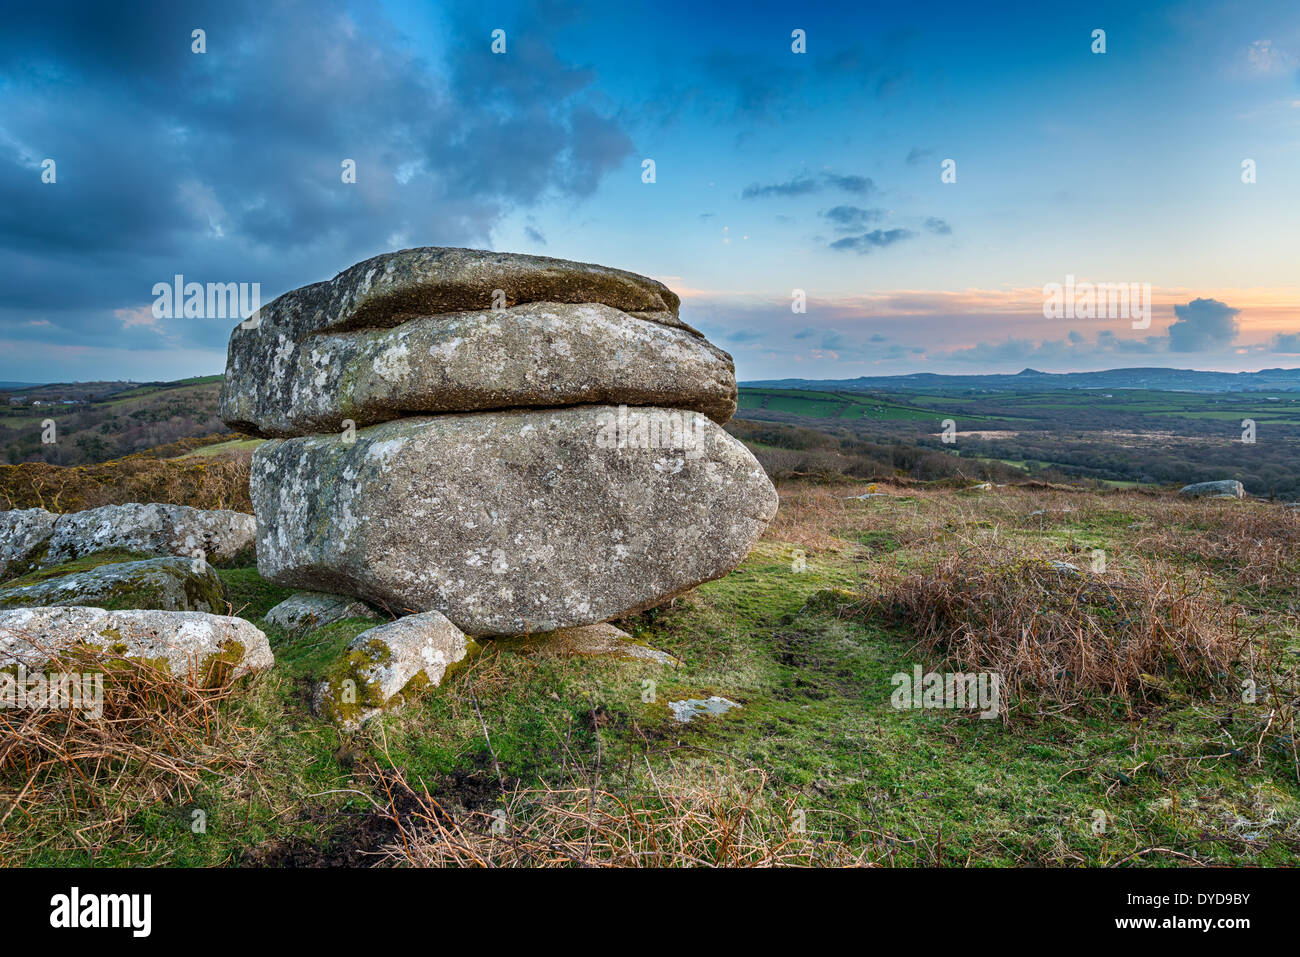 Weathered granite rock formation on Helman Tor a nature reserve on the Saints Way long distance footpath near Bodmin in Cornwall - Stock Image